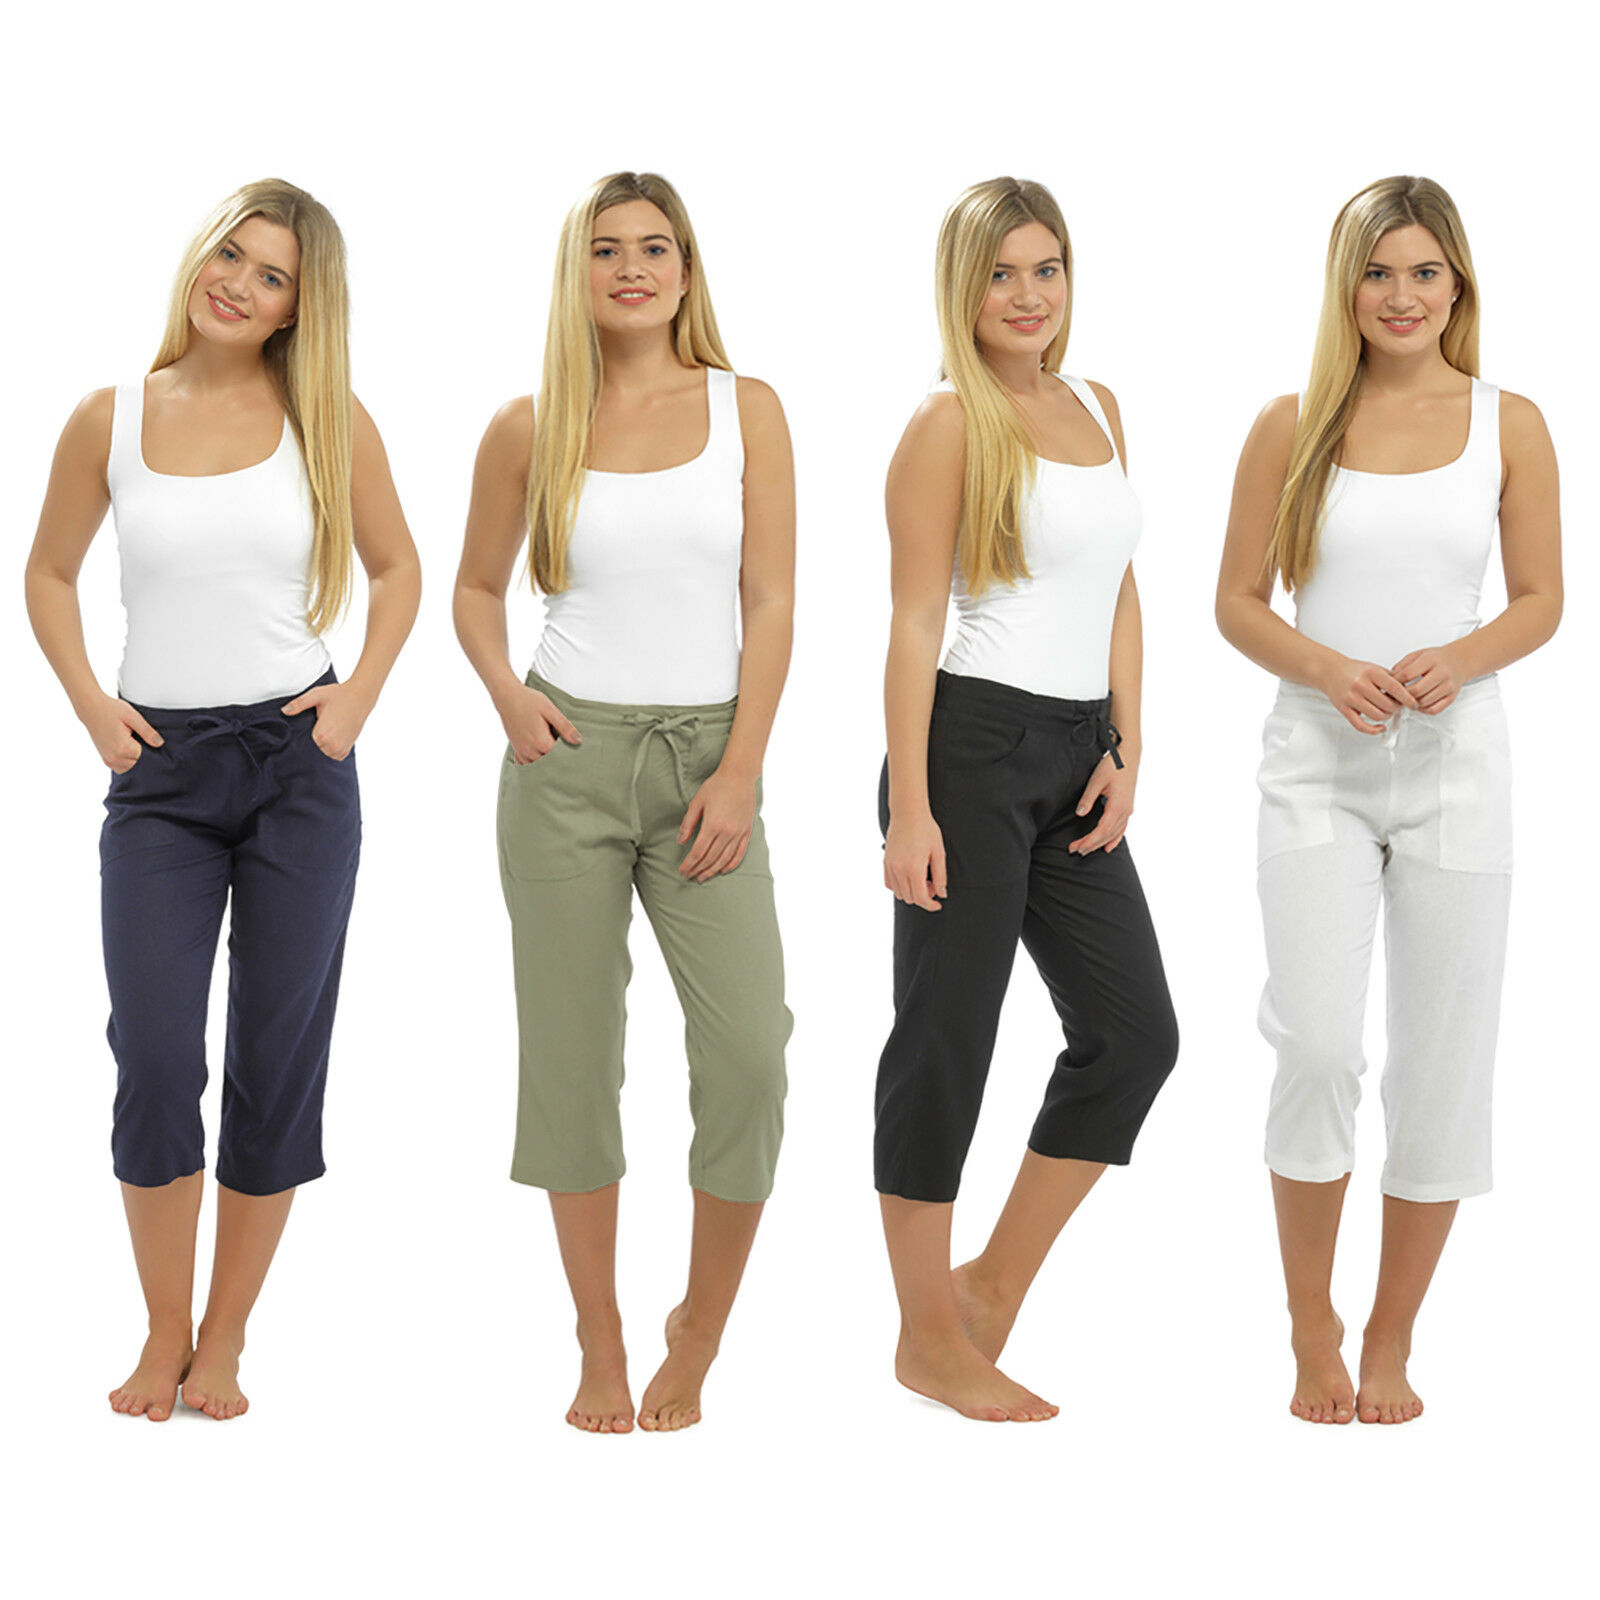 reasonable price many styles 100% high quality LADIES WOMEN LINEN 3 QUARTER PANTS CROPPED TROUSER 3/4 RELAXED FIT ...